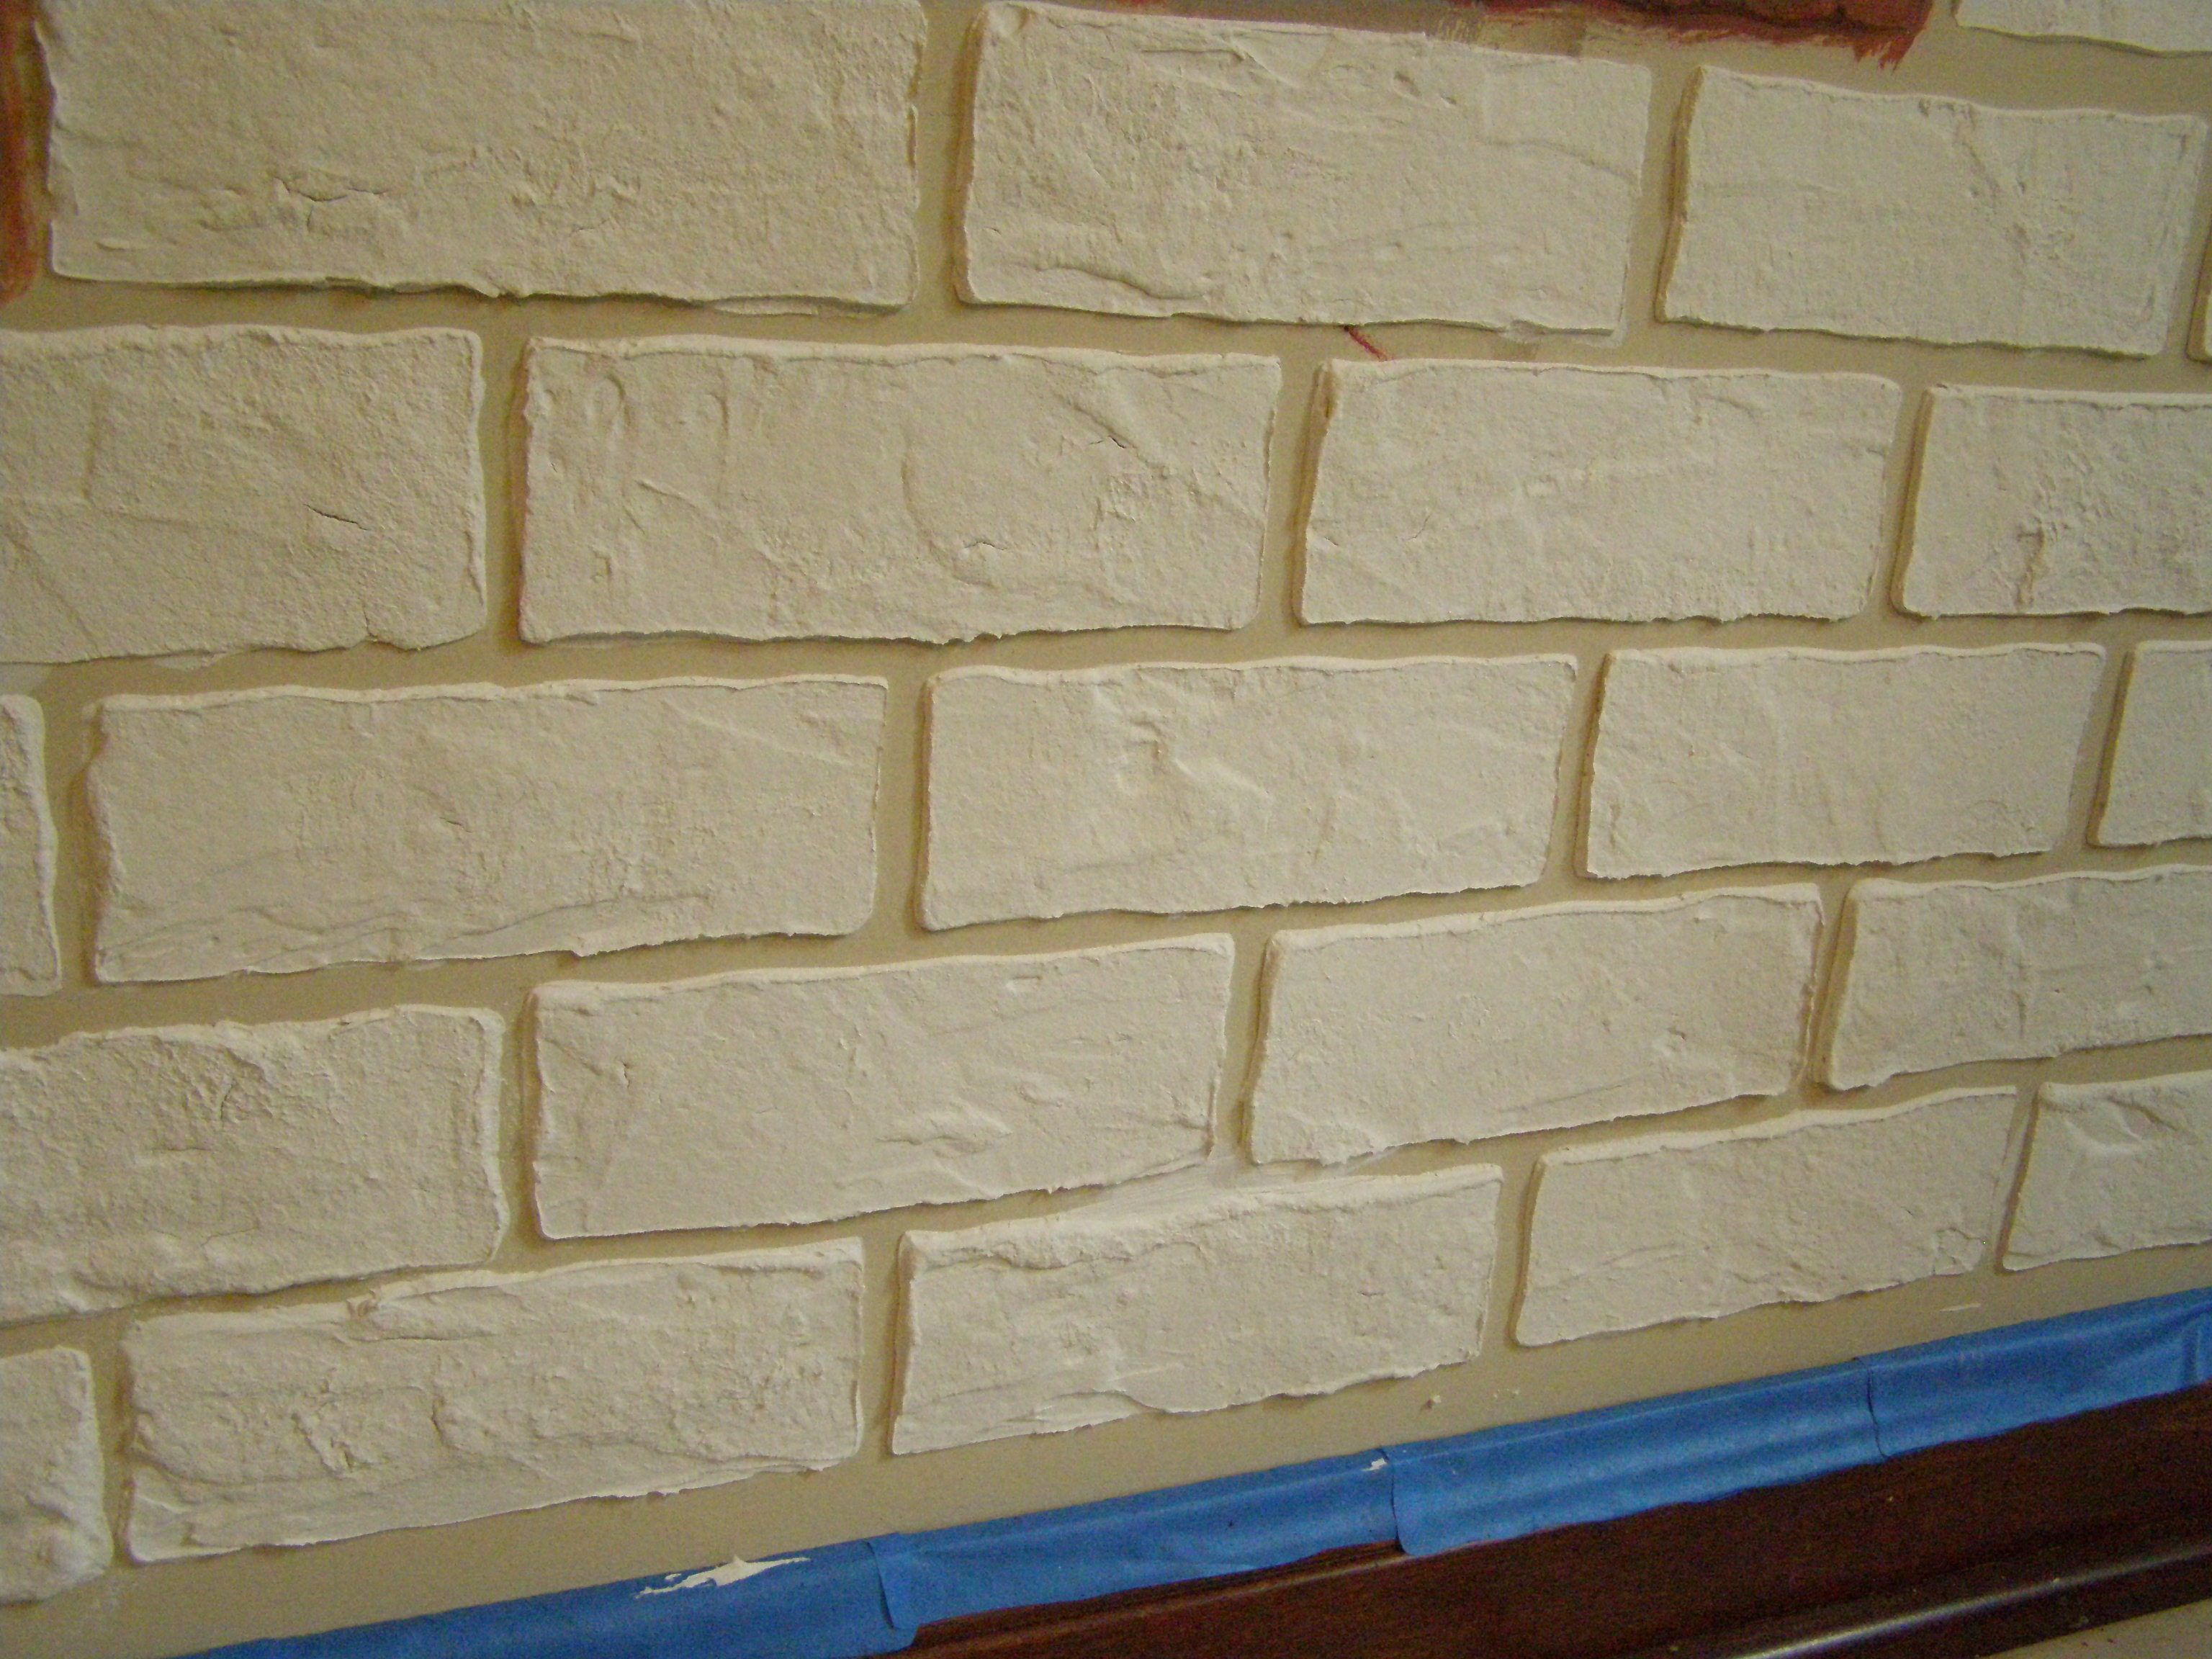 Made Brick Stencil Then Covered With Joint Compound Once Dry I Faux Painted Each Brick To Give A Realistic Look Diy Brick Wall Faux Brick Walls Diy Plaster